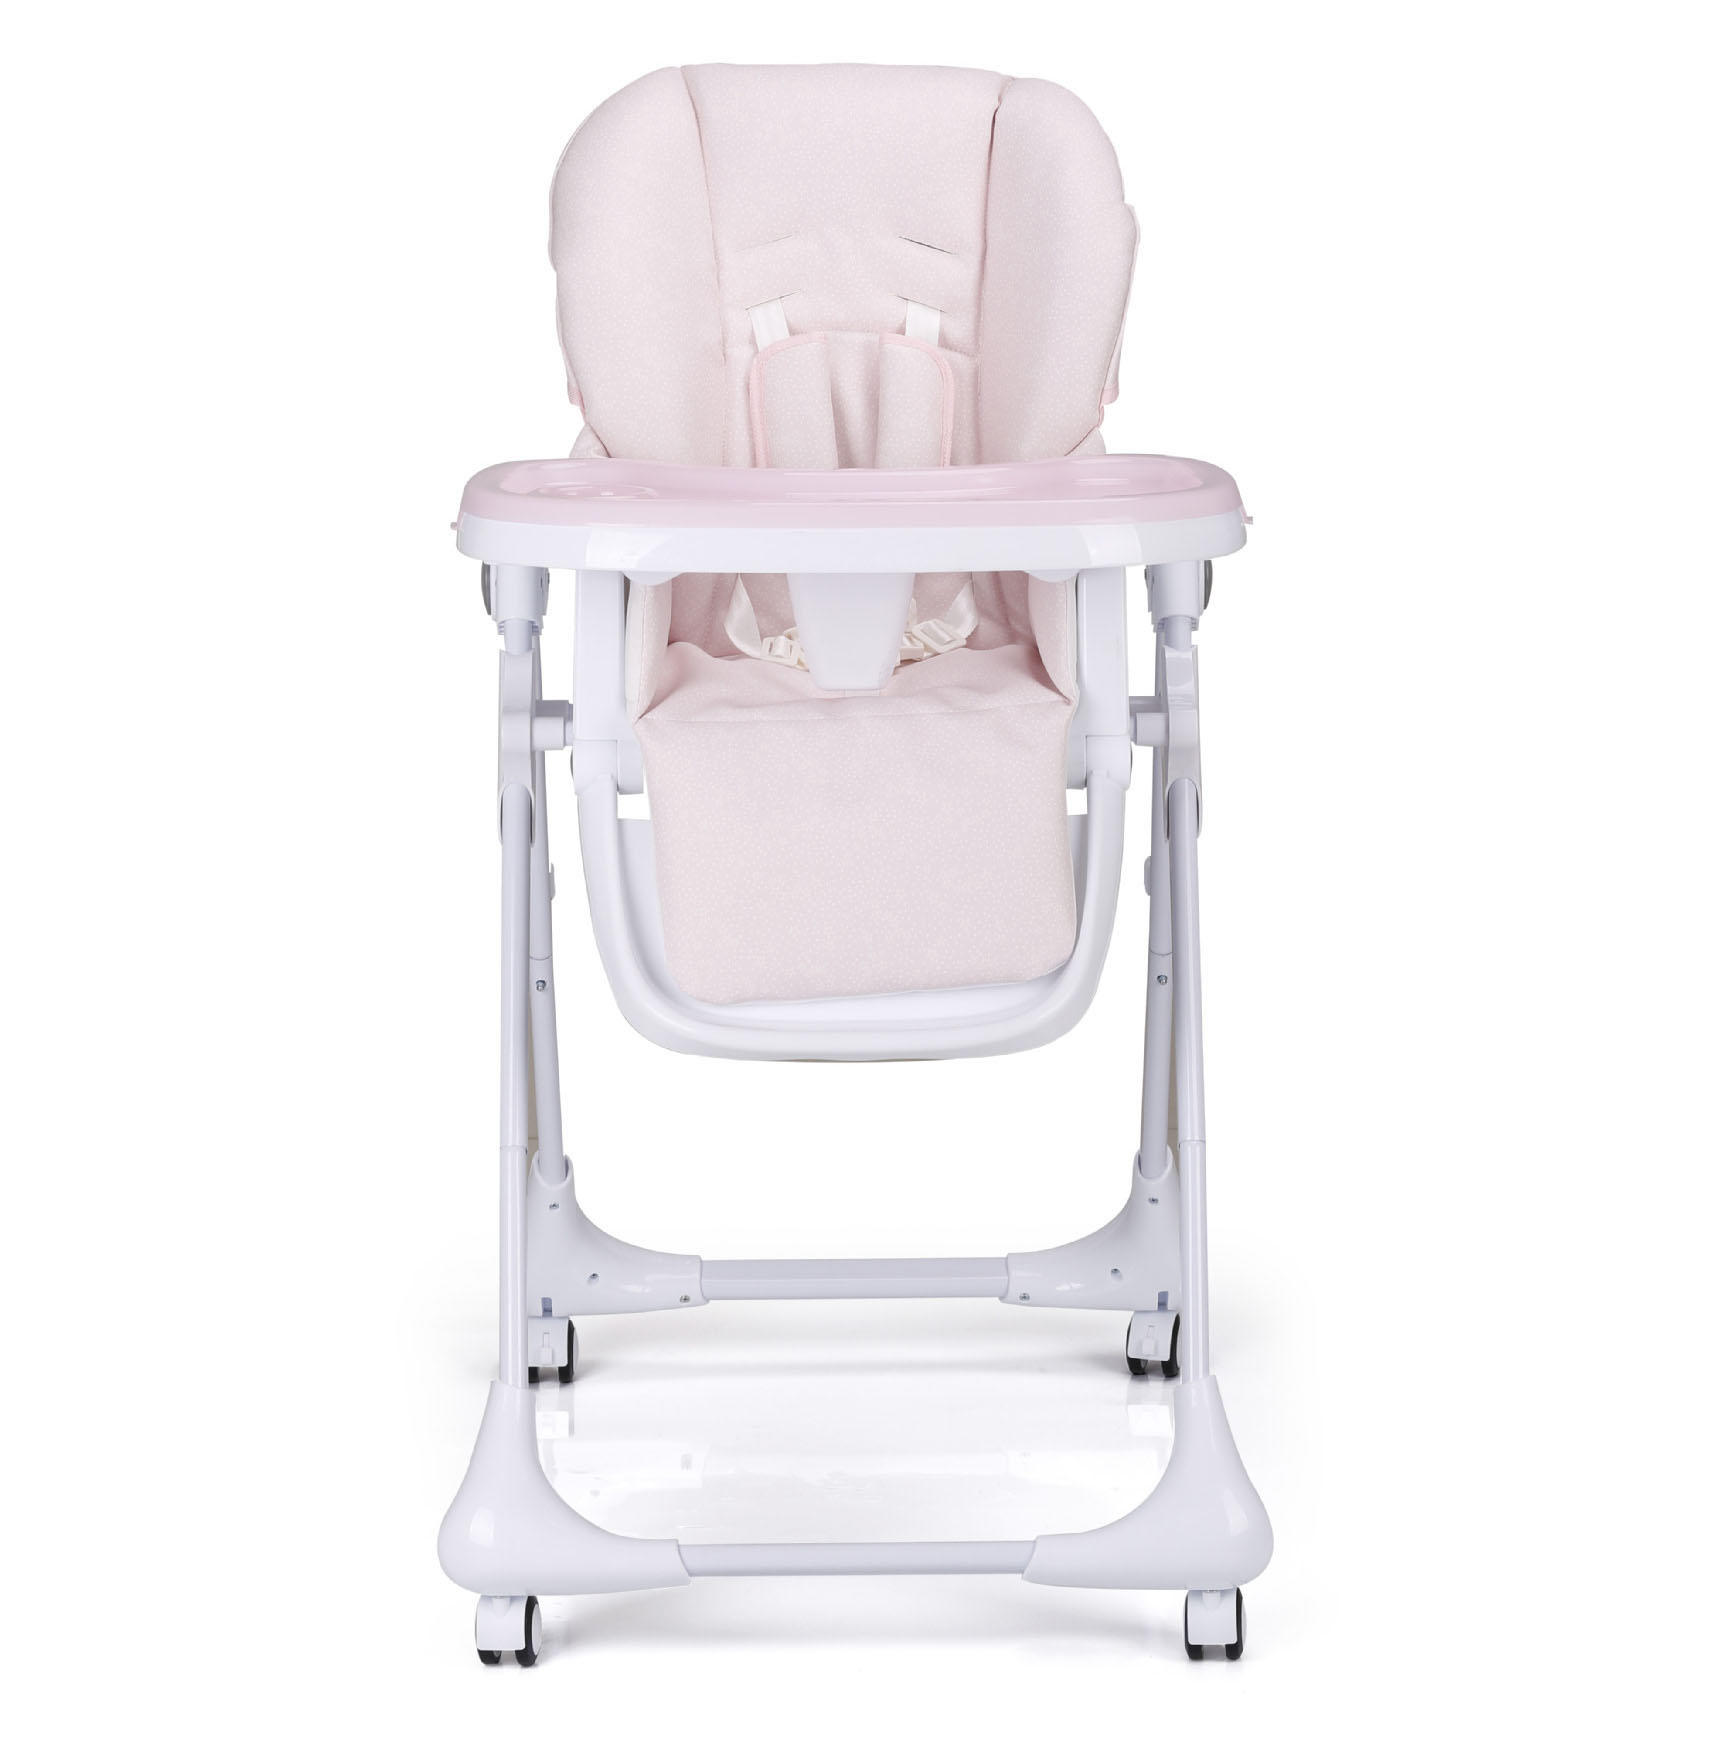 New high chair from birth adjustable Suppliers for older baby-2